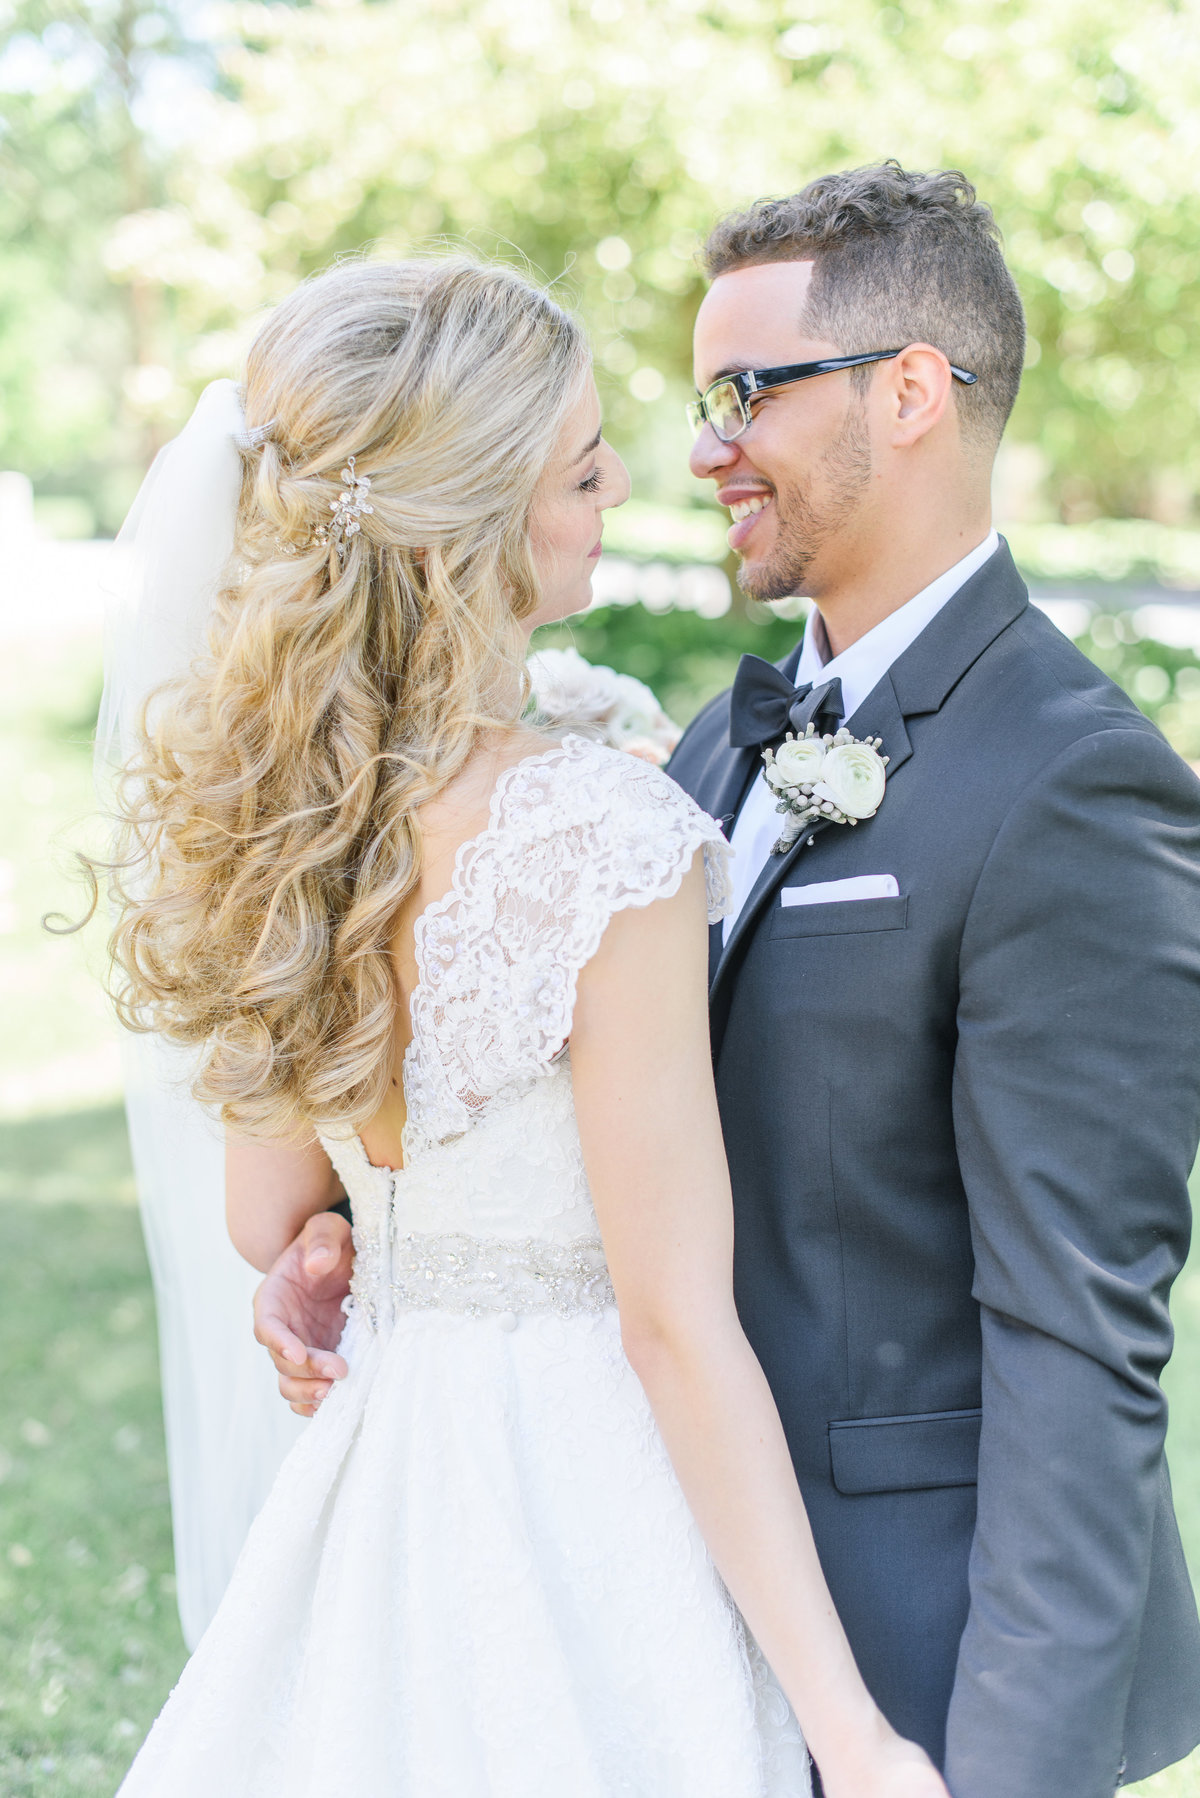 Olivia Rae Photography | Historic Acres of Hershey Wedding-384